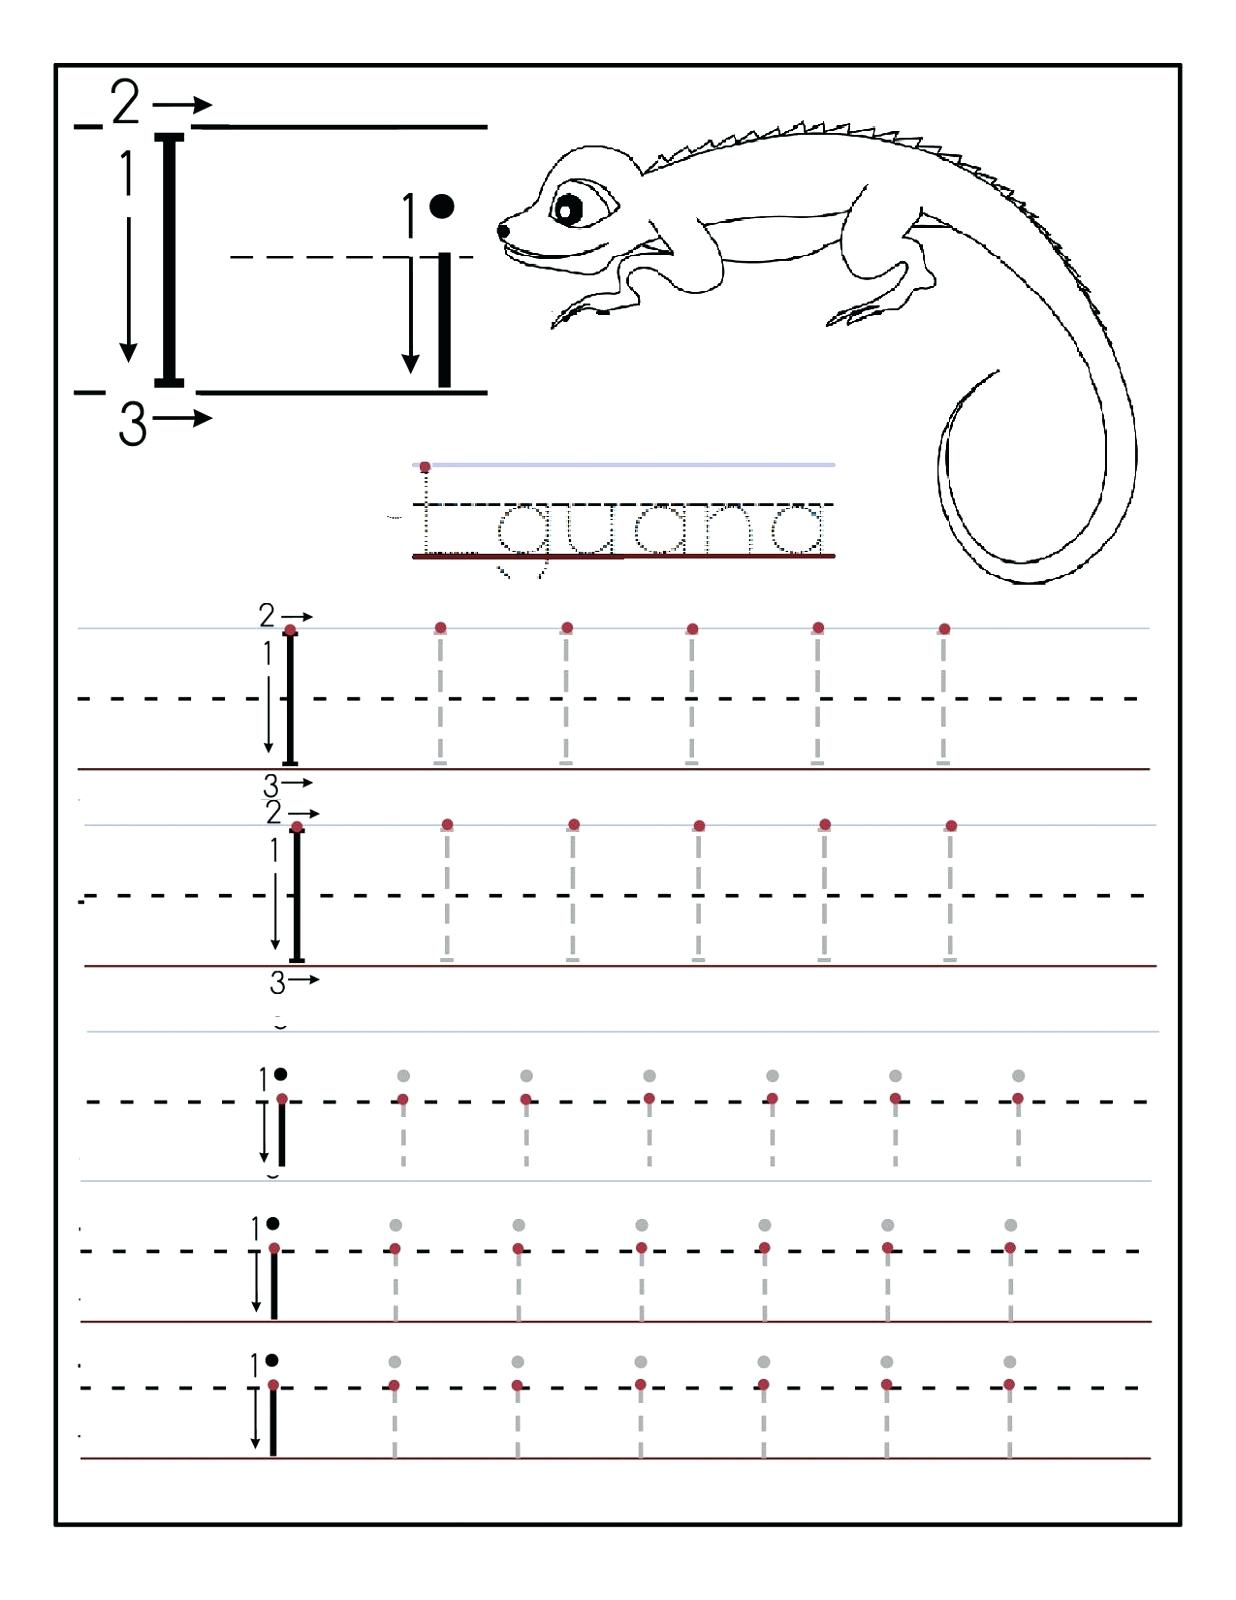 I Worksheet Letter I Worksheet Iguana Worksheet Maker Lite within Tracing Letters Maker